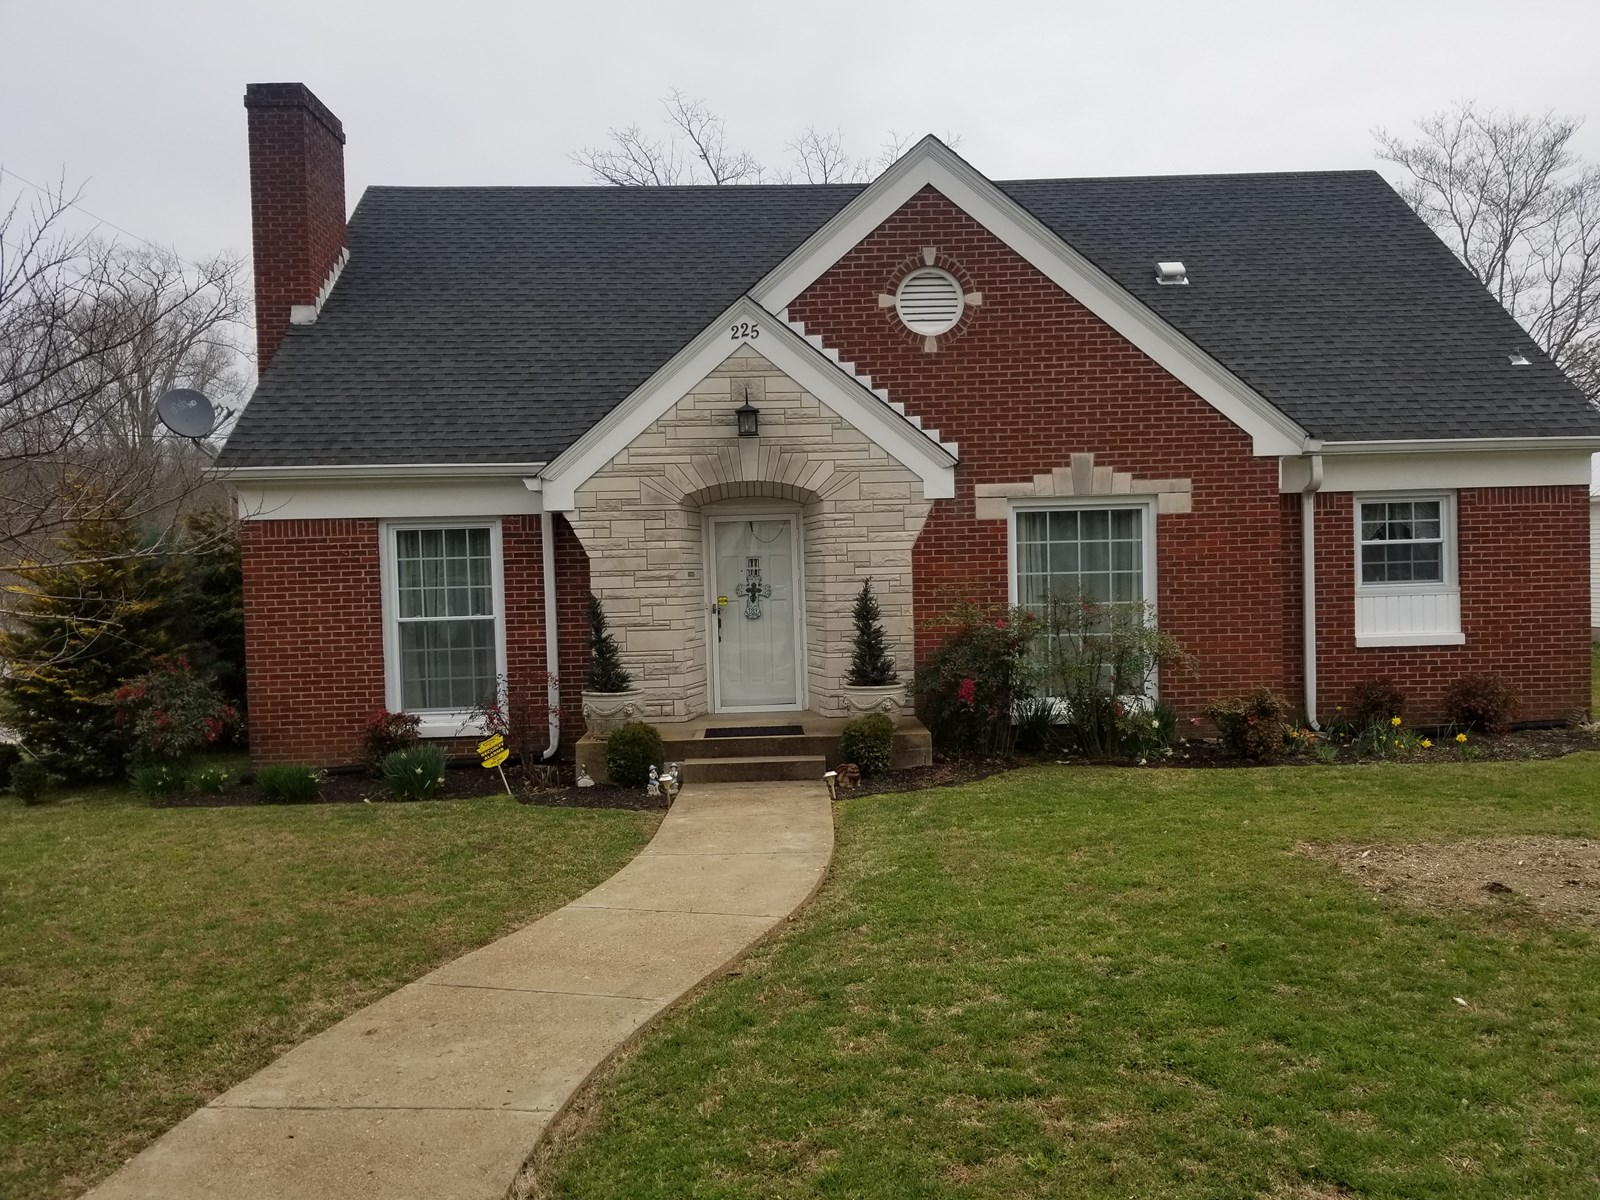 WAYNESBORO TN HOME FOR SALE 3 BEDROOM 2.5 BATH 2 STORY BRICK